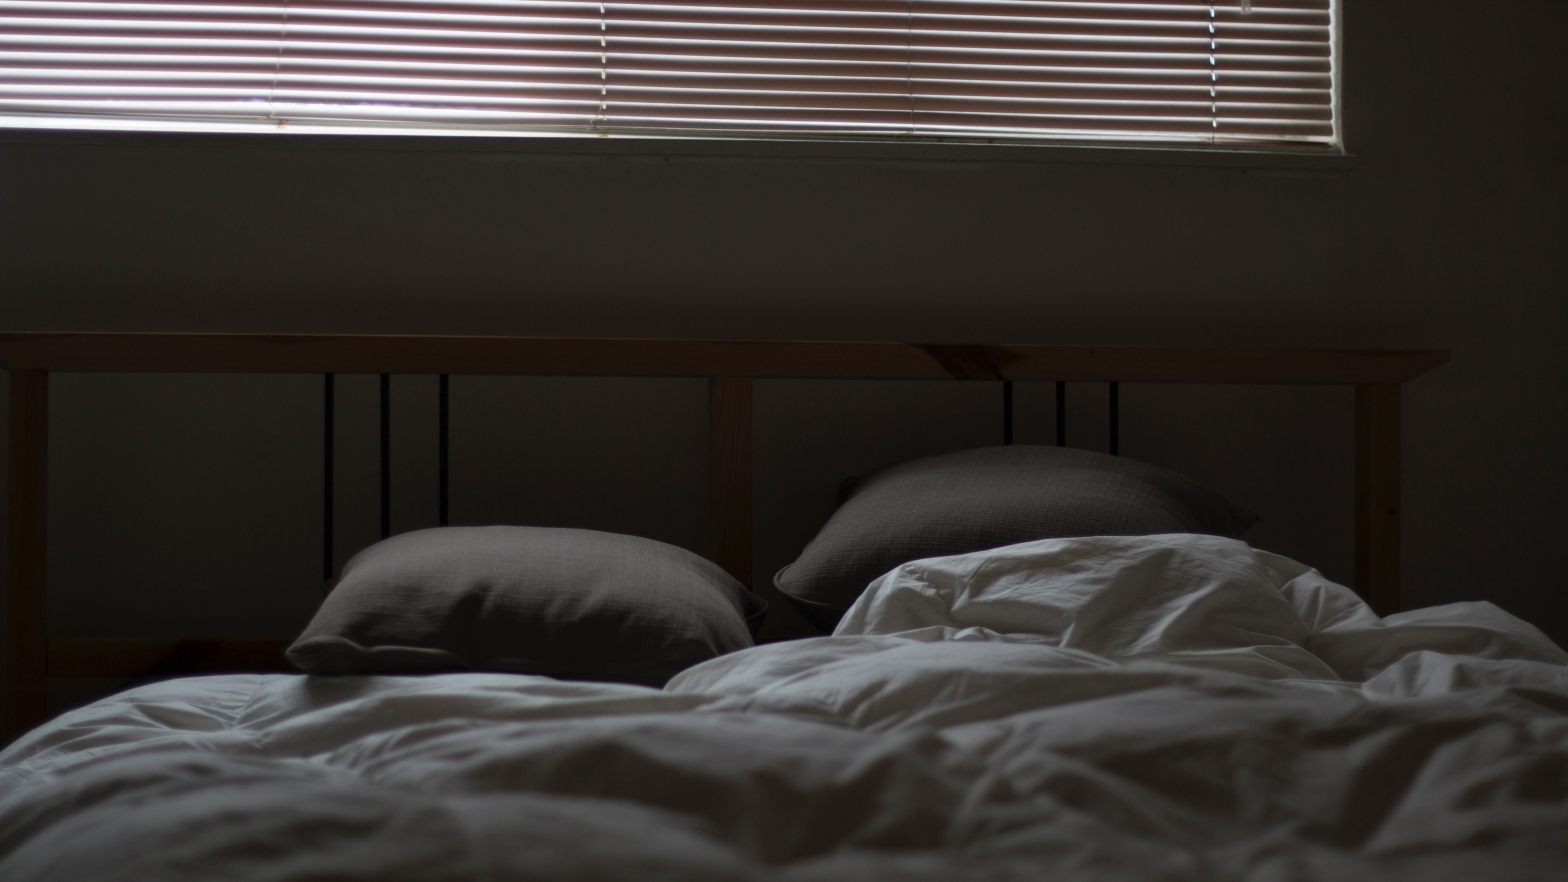 Image is of an unmade bed under a window with slatted blinds